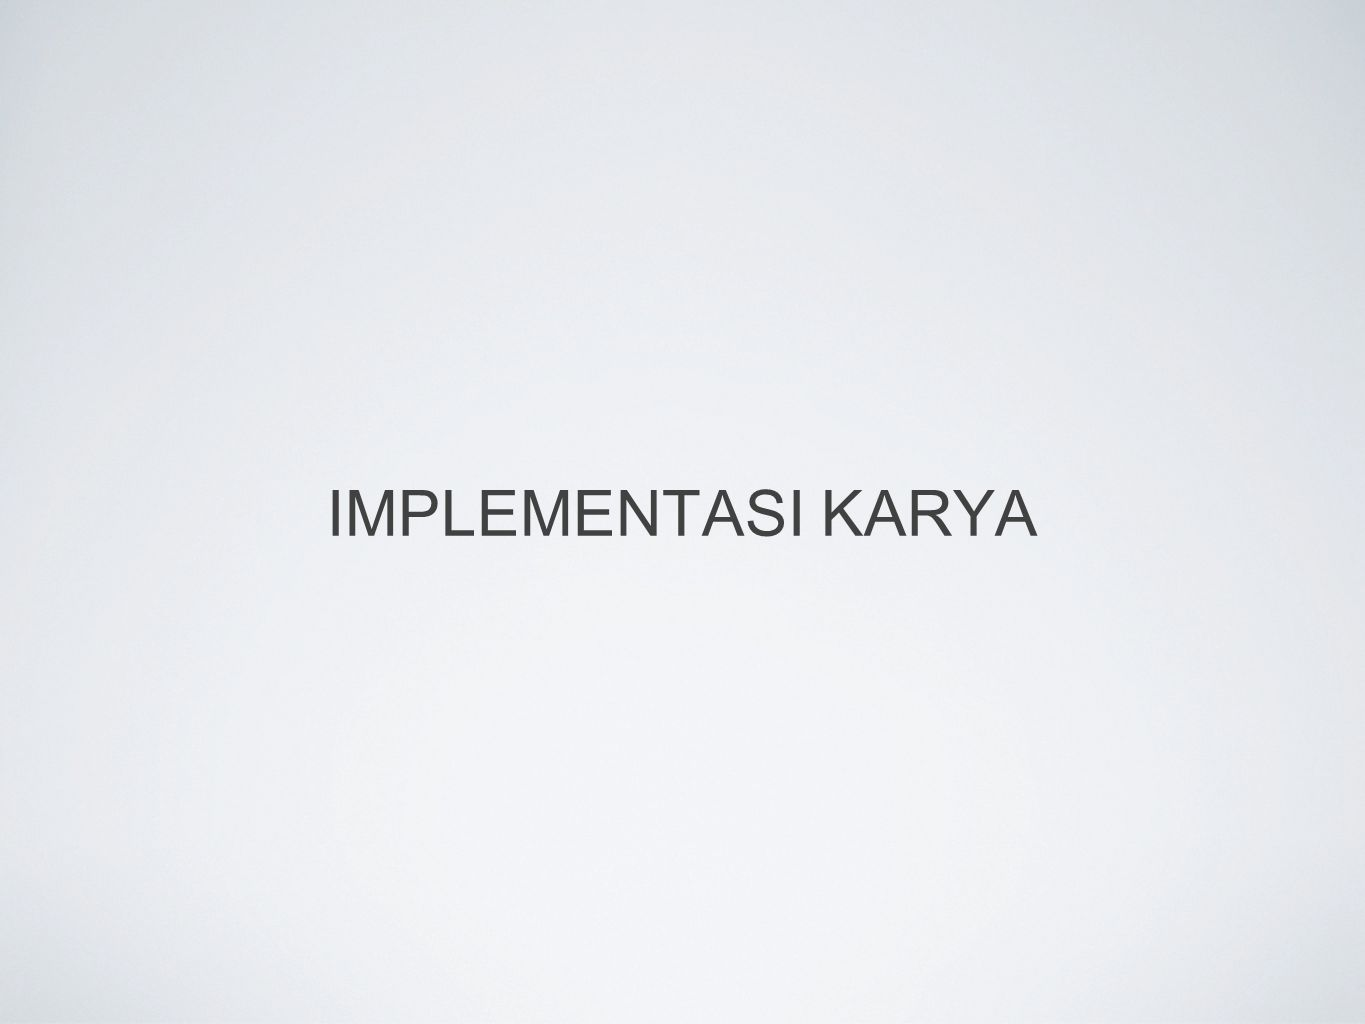 IMPLEMENTASI KARYA